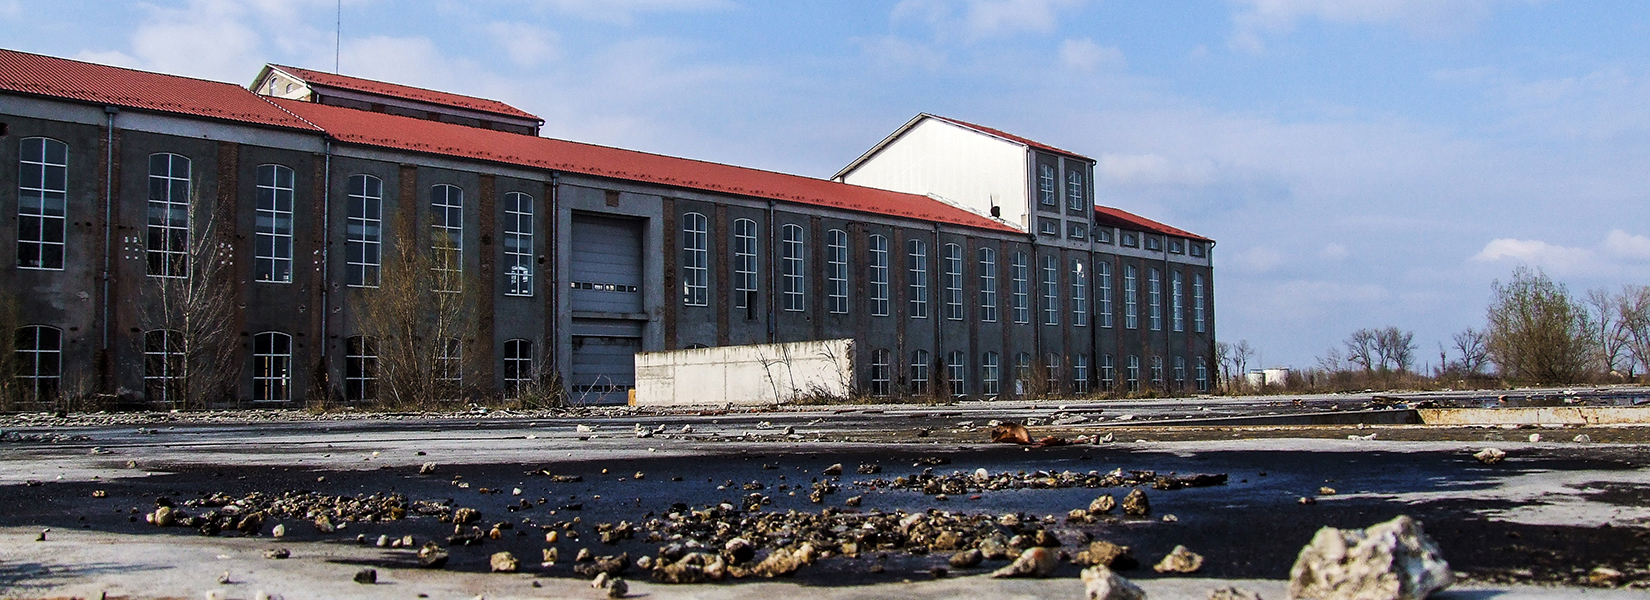 The abandoned Baranja sugar factory